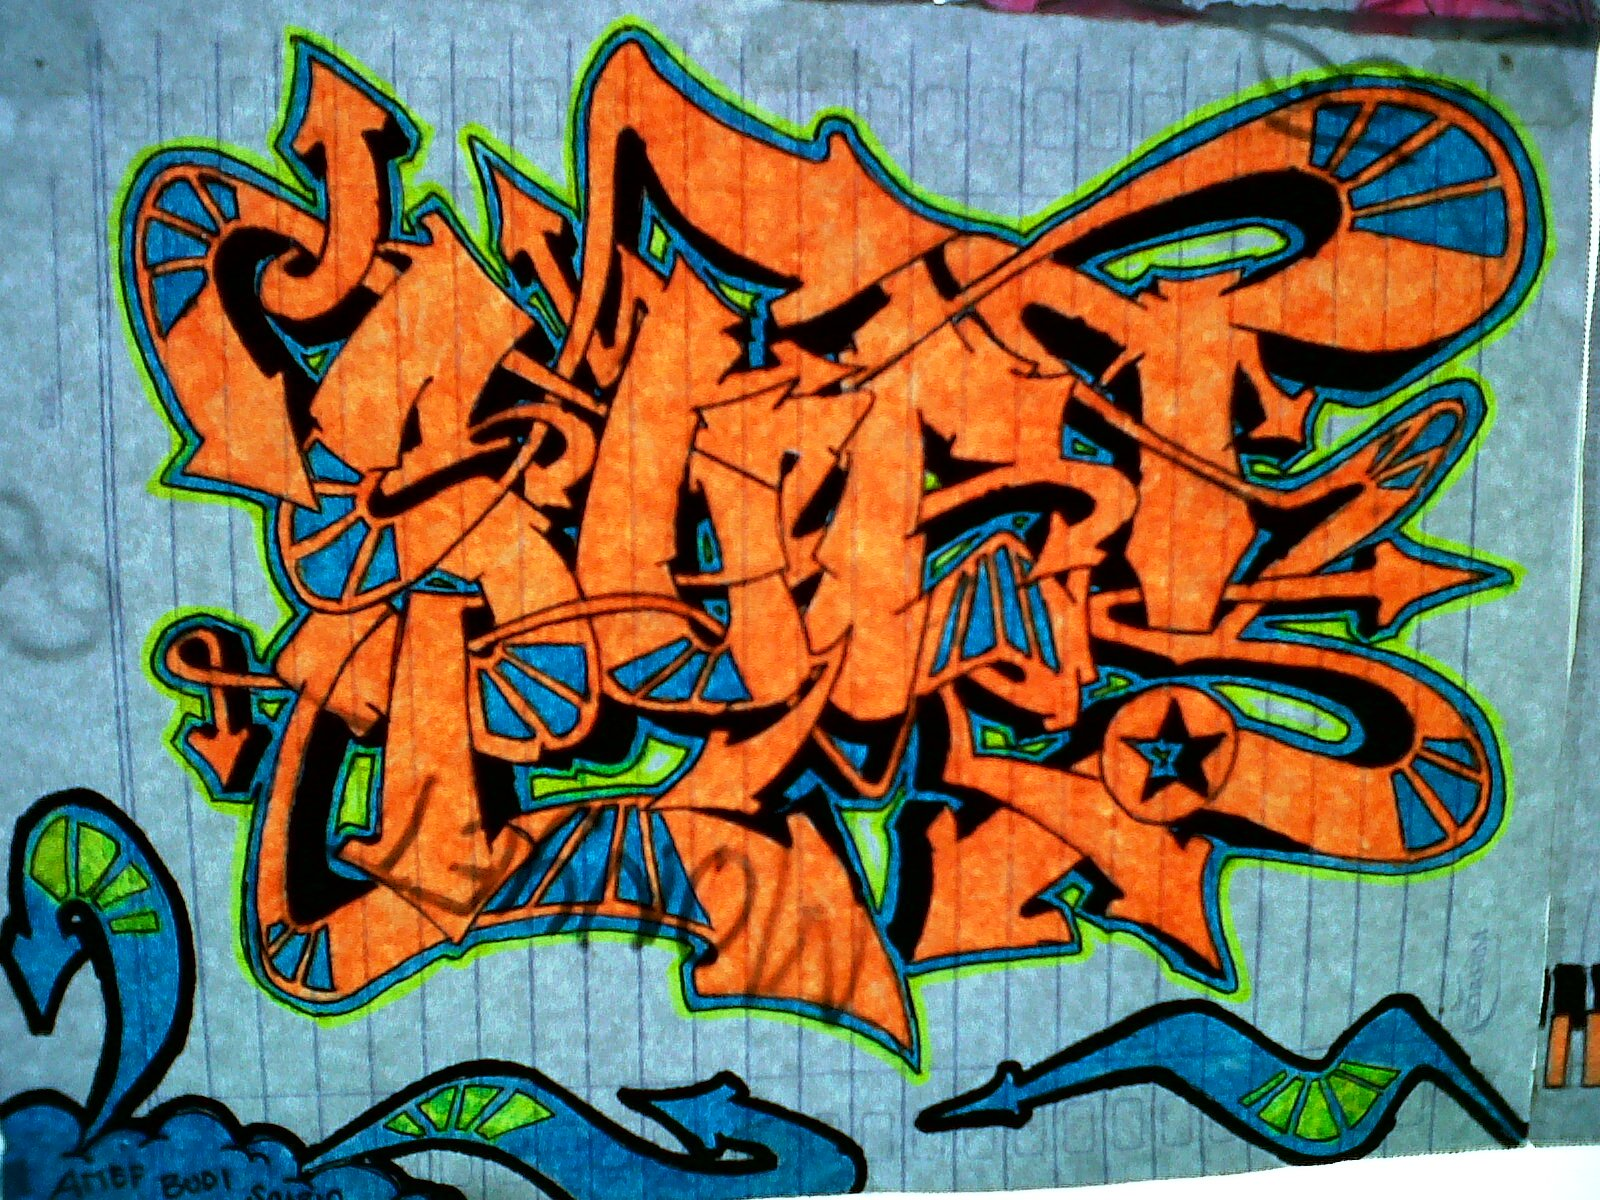 4RI3F BL0G graffiti name